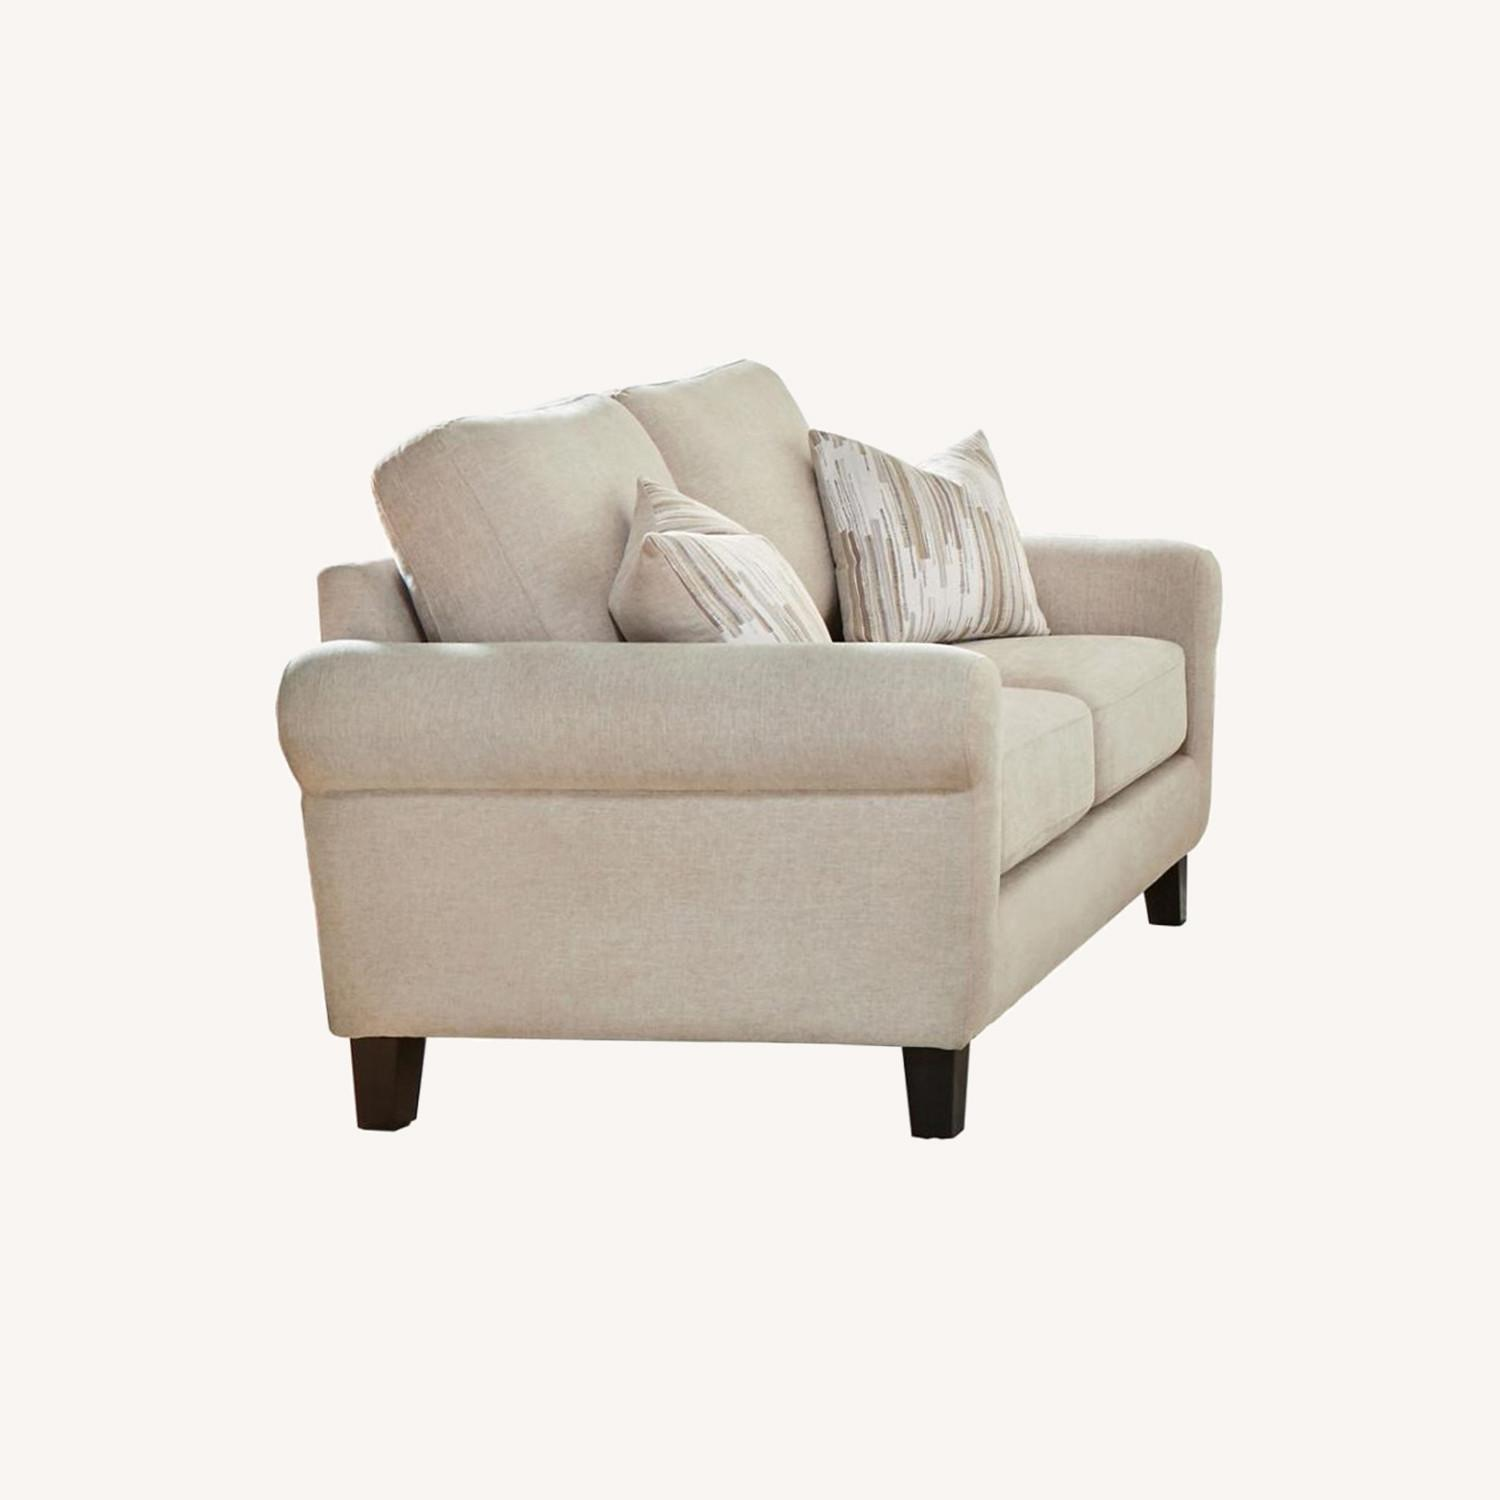 Loveseat In Oatmeal Chenille Upholstery - image-4